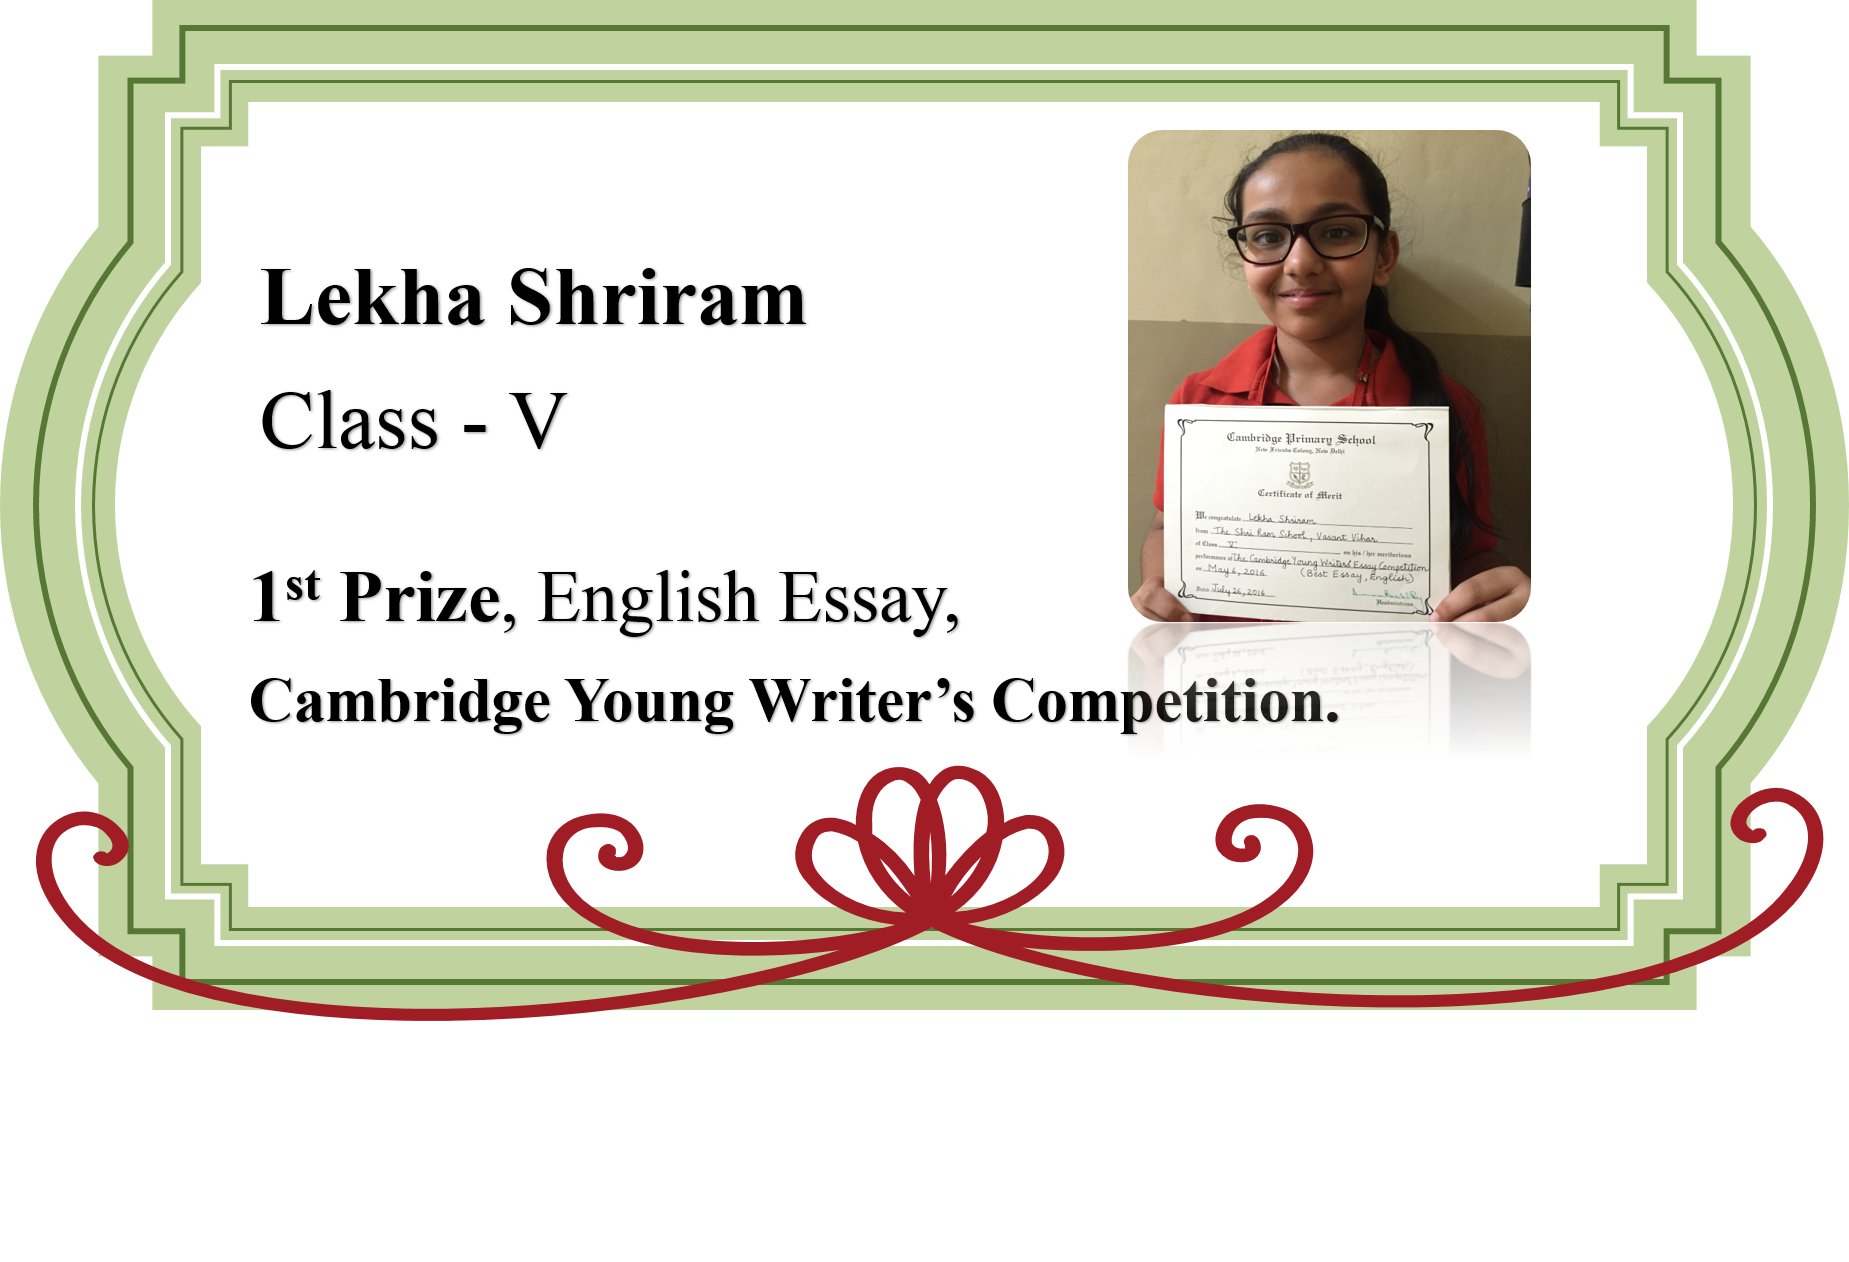 essay writing competition cambridge Write your essay you must use grammatically correct sentences with accurate spelling and punctuation in a style appropriate to the situation - do writing part two first if they have a mental block with the writing part one essay, coming back to the first task later.